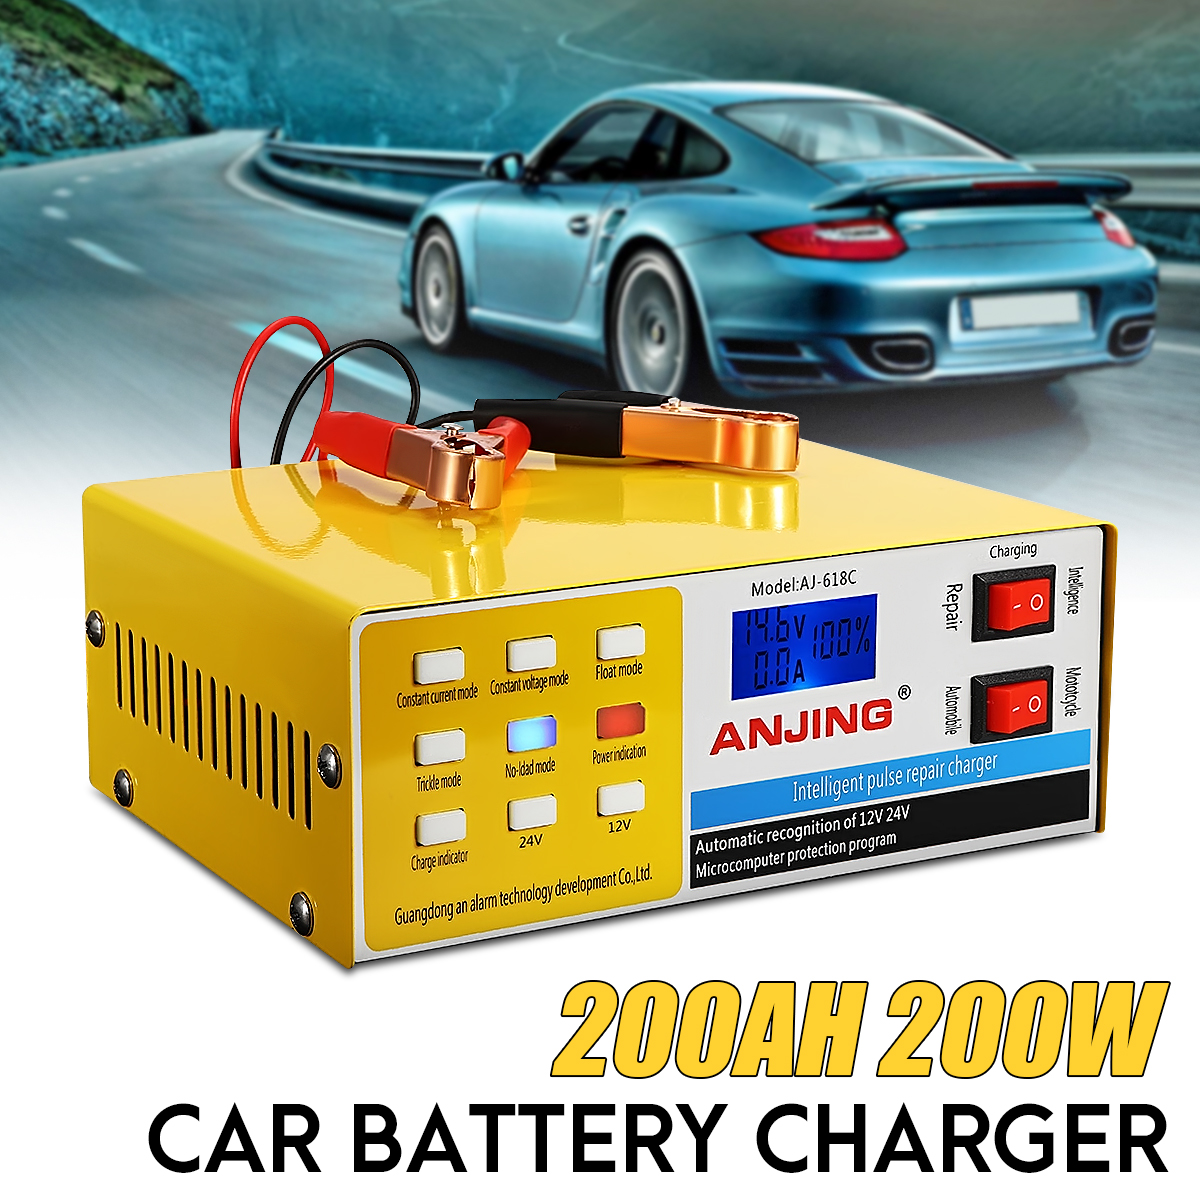 250V 12/24V 200AH Pulse Repair Car Battery Charger Yellow Full Automatic Intelligent PWM 5Charging Modes Digital Pulse Repairing 350w 12v 24v 200ah portable electric car emergency charger booster intelligent pulse repair type abs lcd battery charge 2 modes